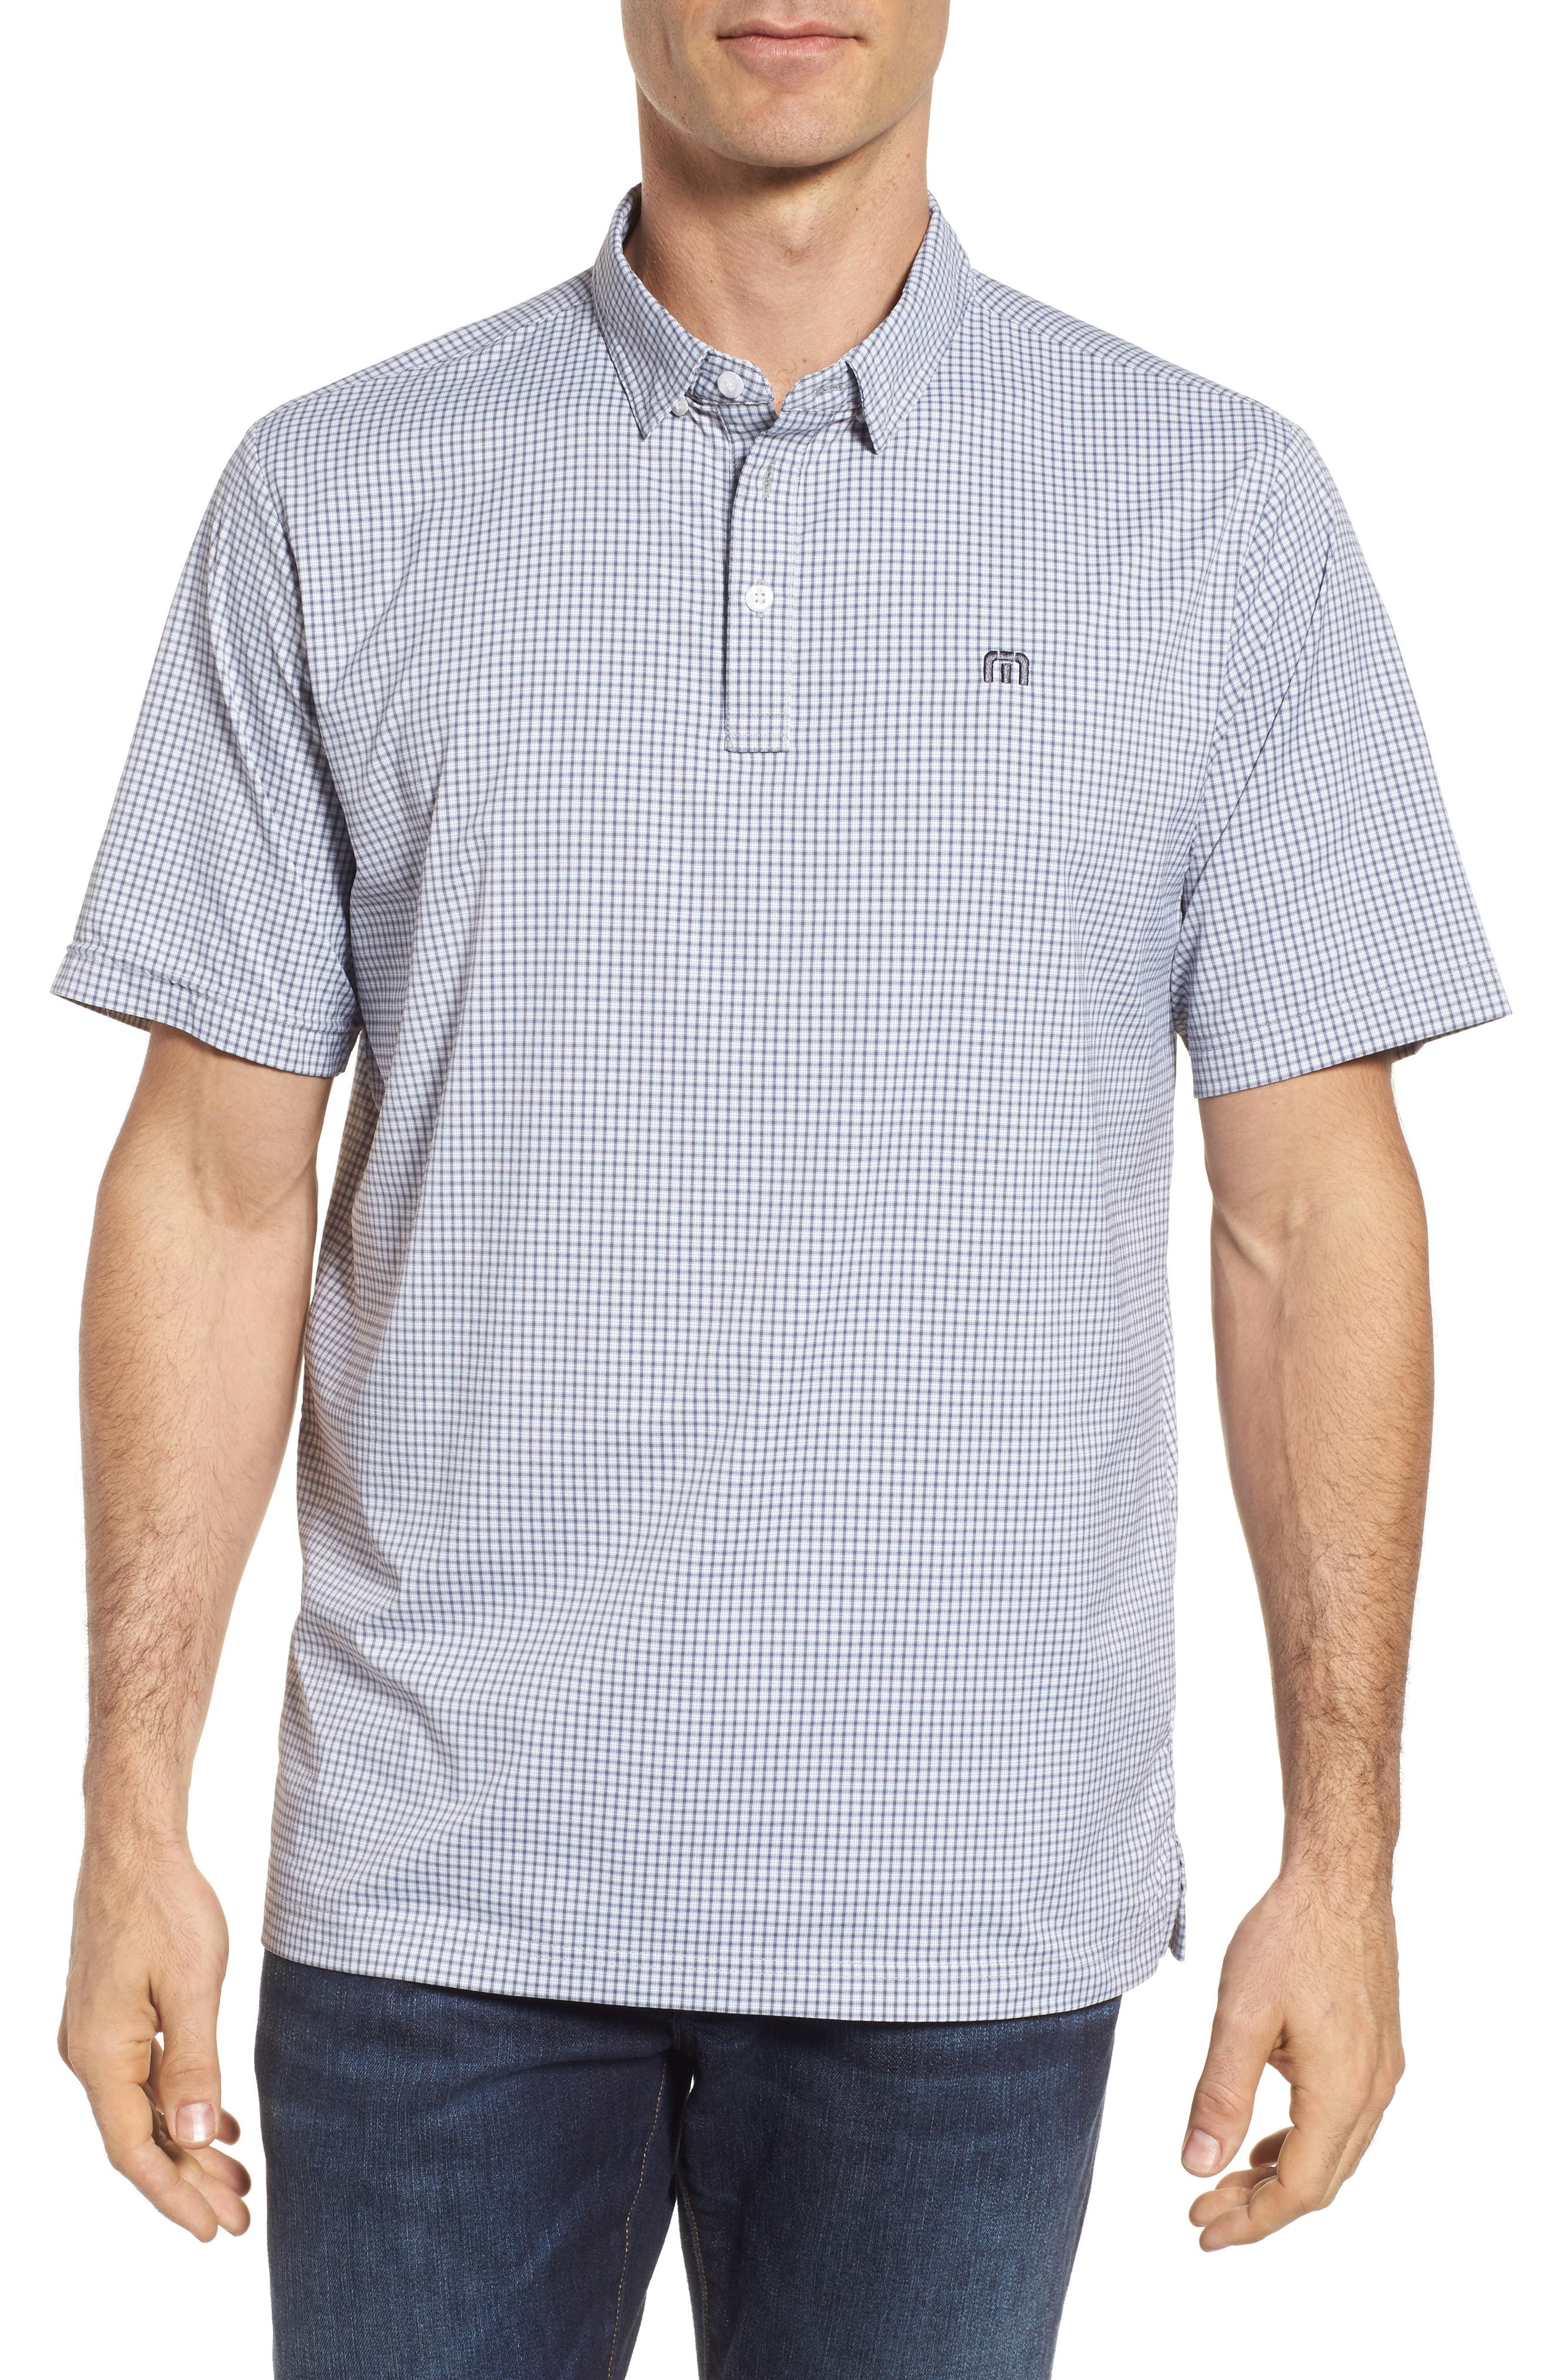 Zim Polo,                         Main,                         color, White/ Grisaille